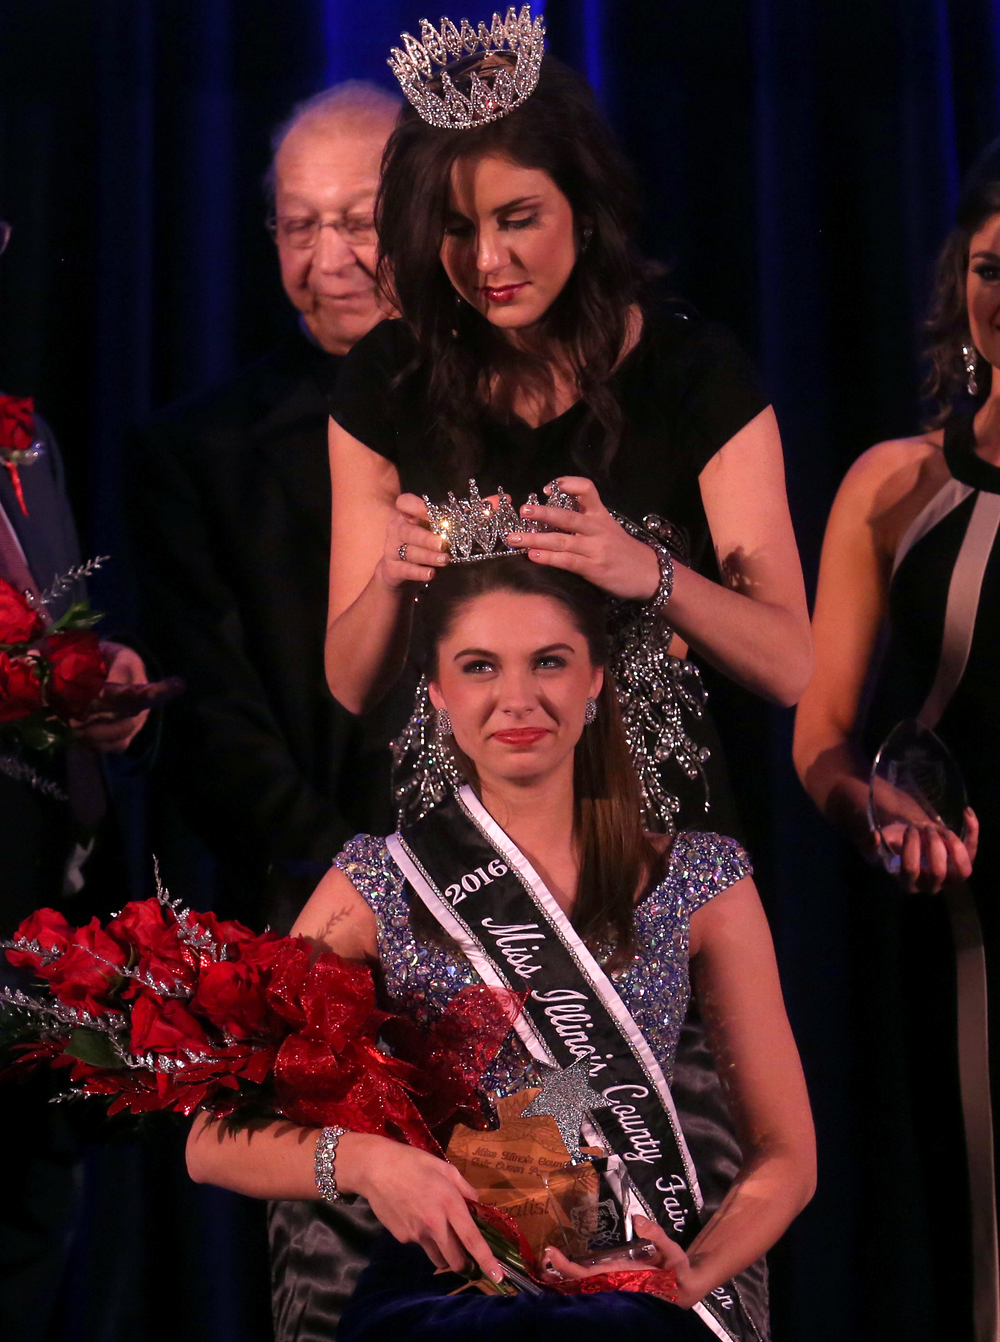 2016 Miss Illinois County Fair queen Abby Foster of Vermilion County has her tiara secured by outgoing 2015 Miss Illinois County Fair Queen Sadie Gassmann. David Spencer/The State Journal-Register